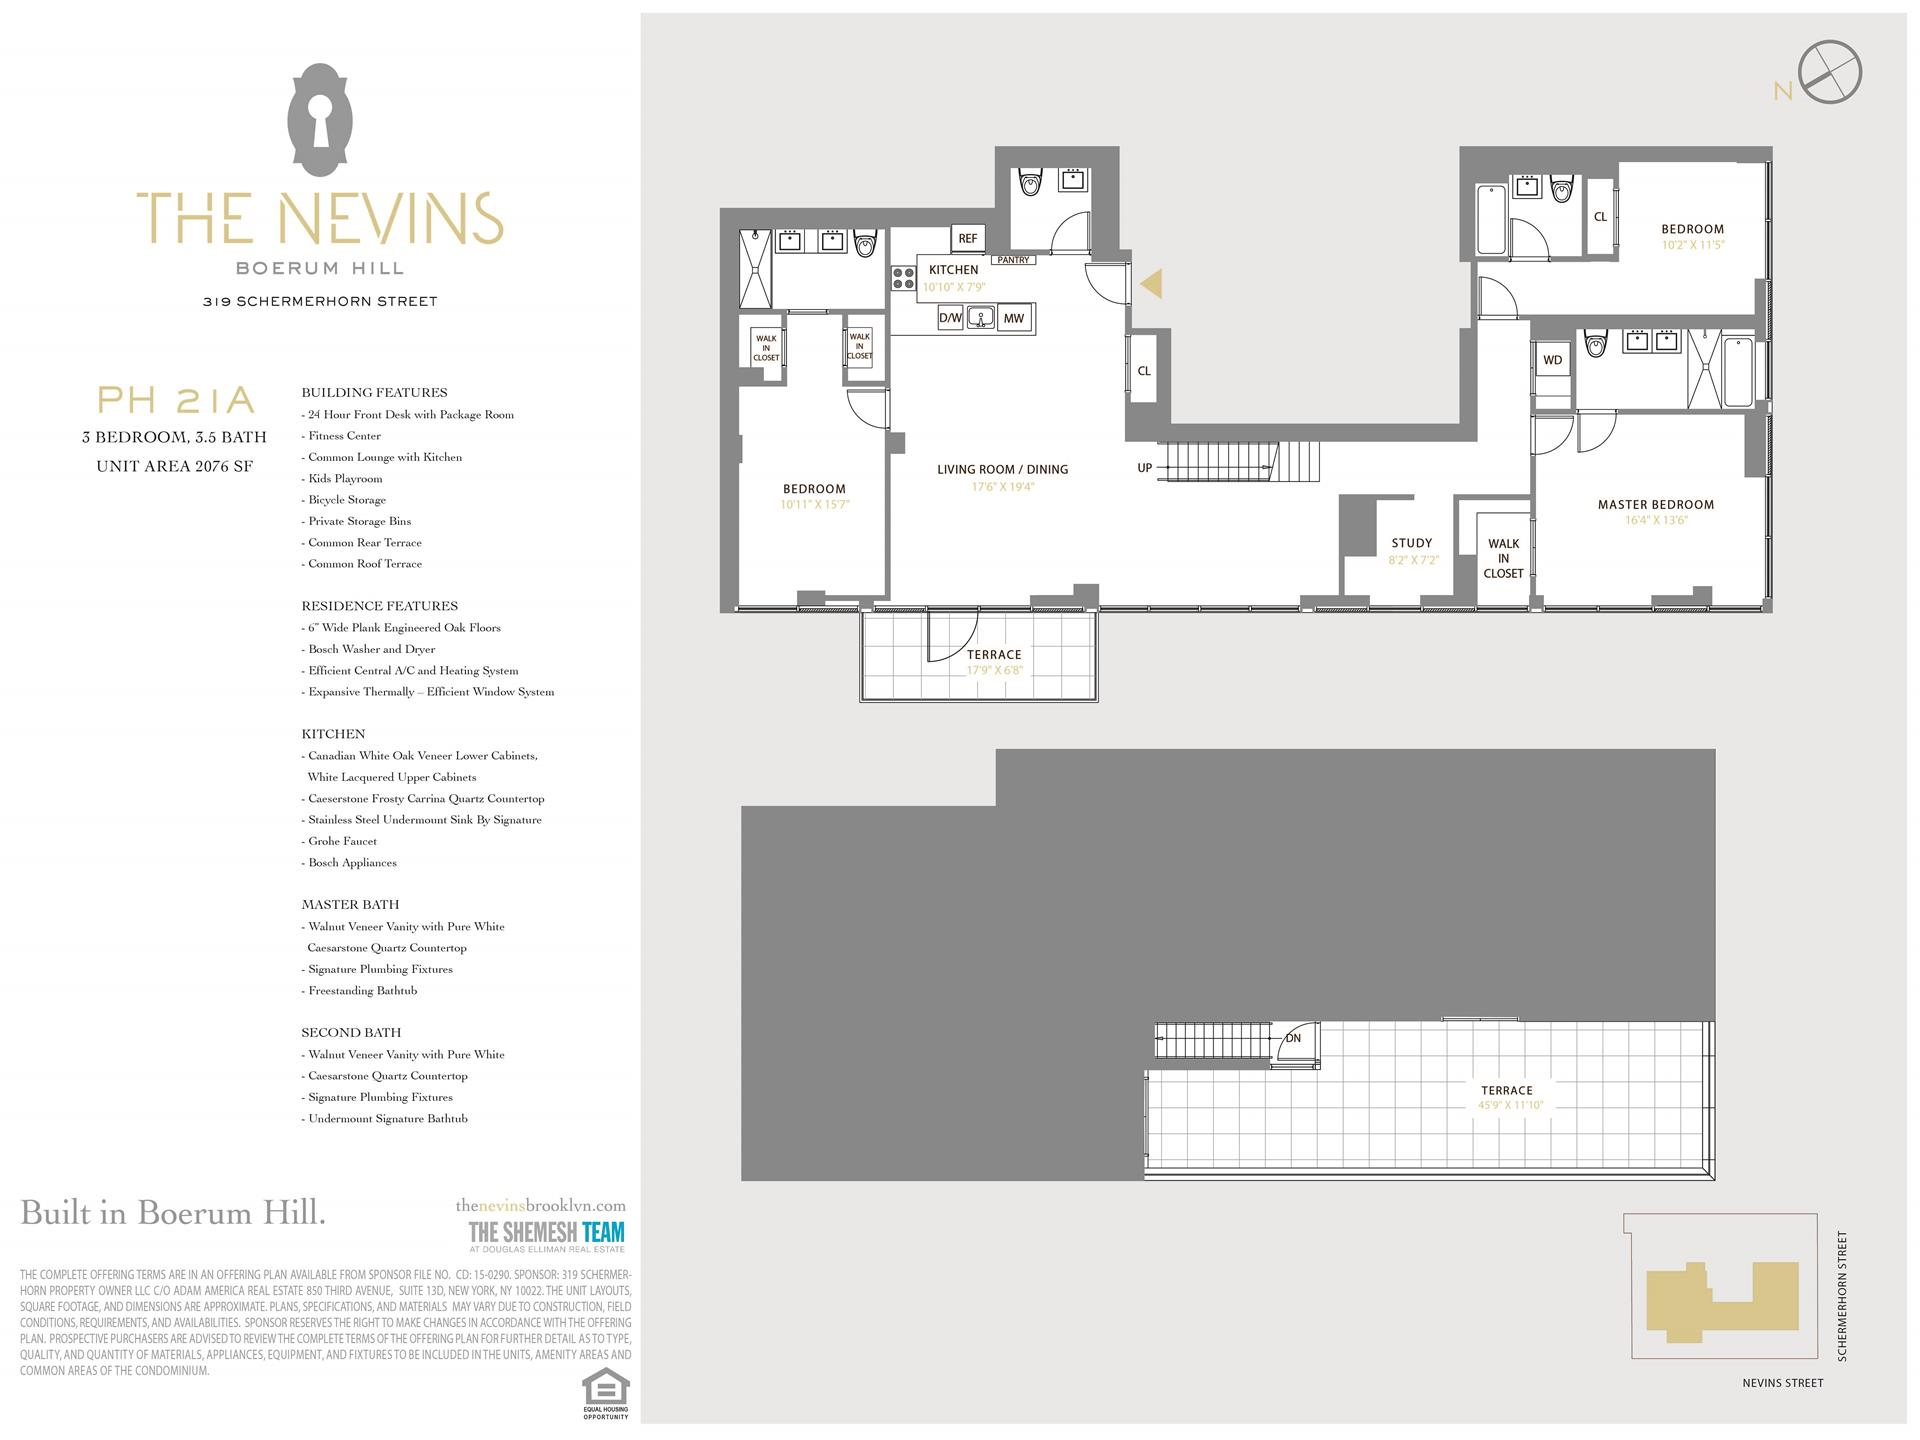 Floor plan of The Nevins, 319 Schermerhorn Street, PH21A - Boerum Hill, New York